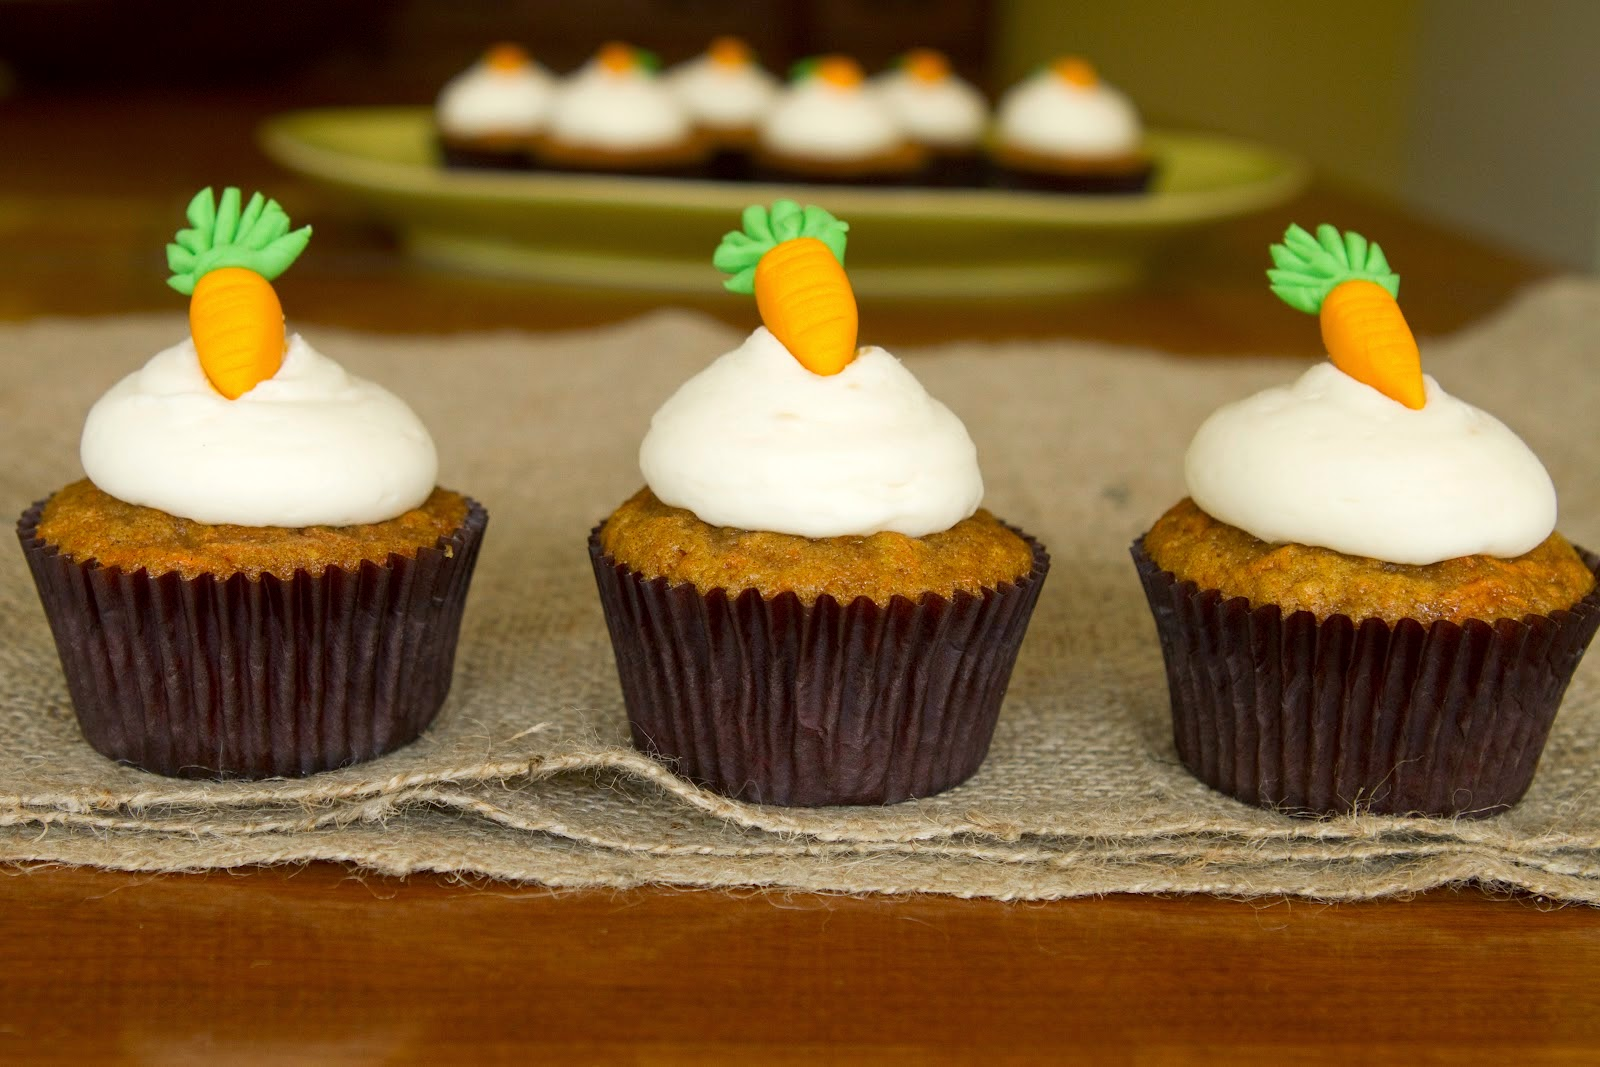 Best Cake Decorating Ideas Healthy Carrot Cake Decorating